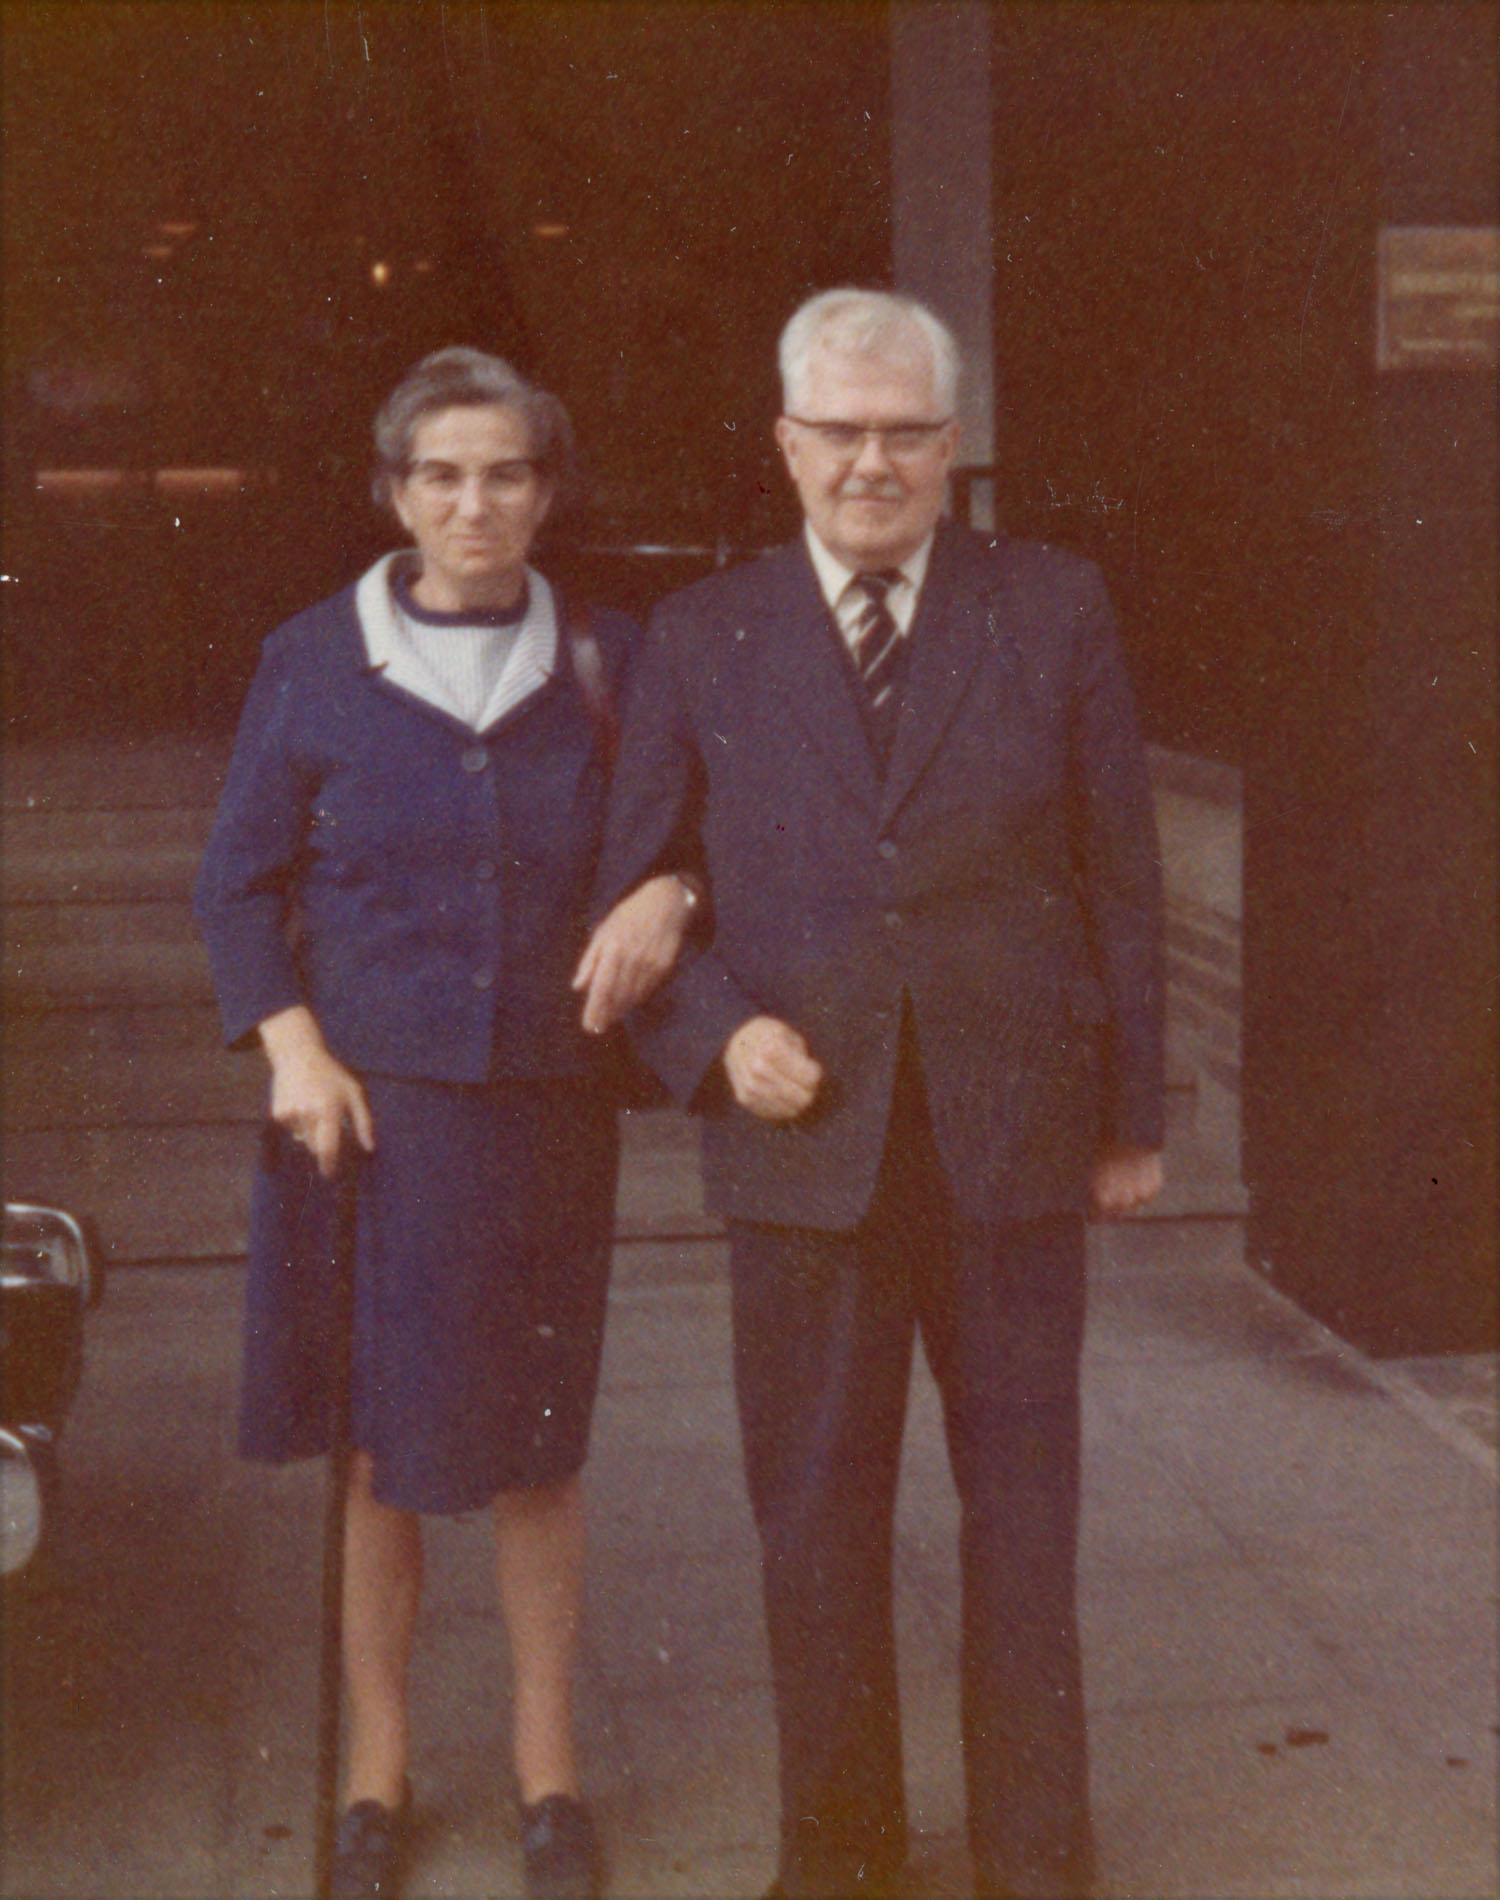 Nora and Frank Smithies